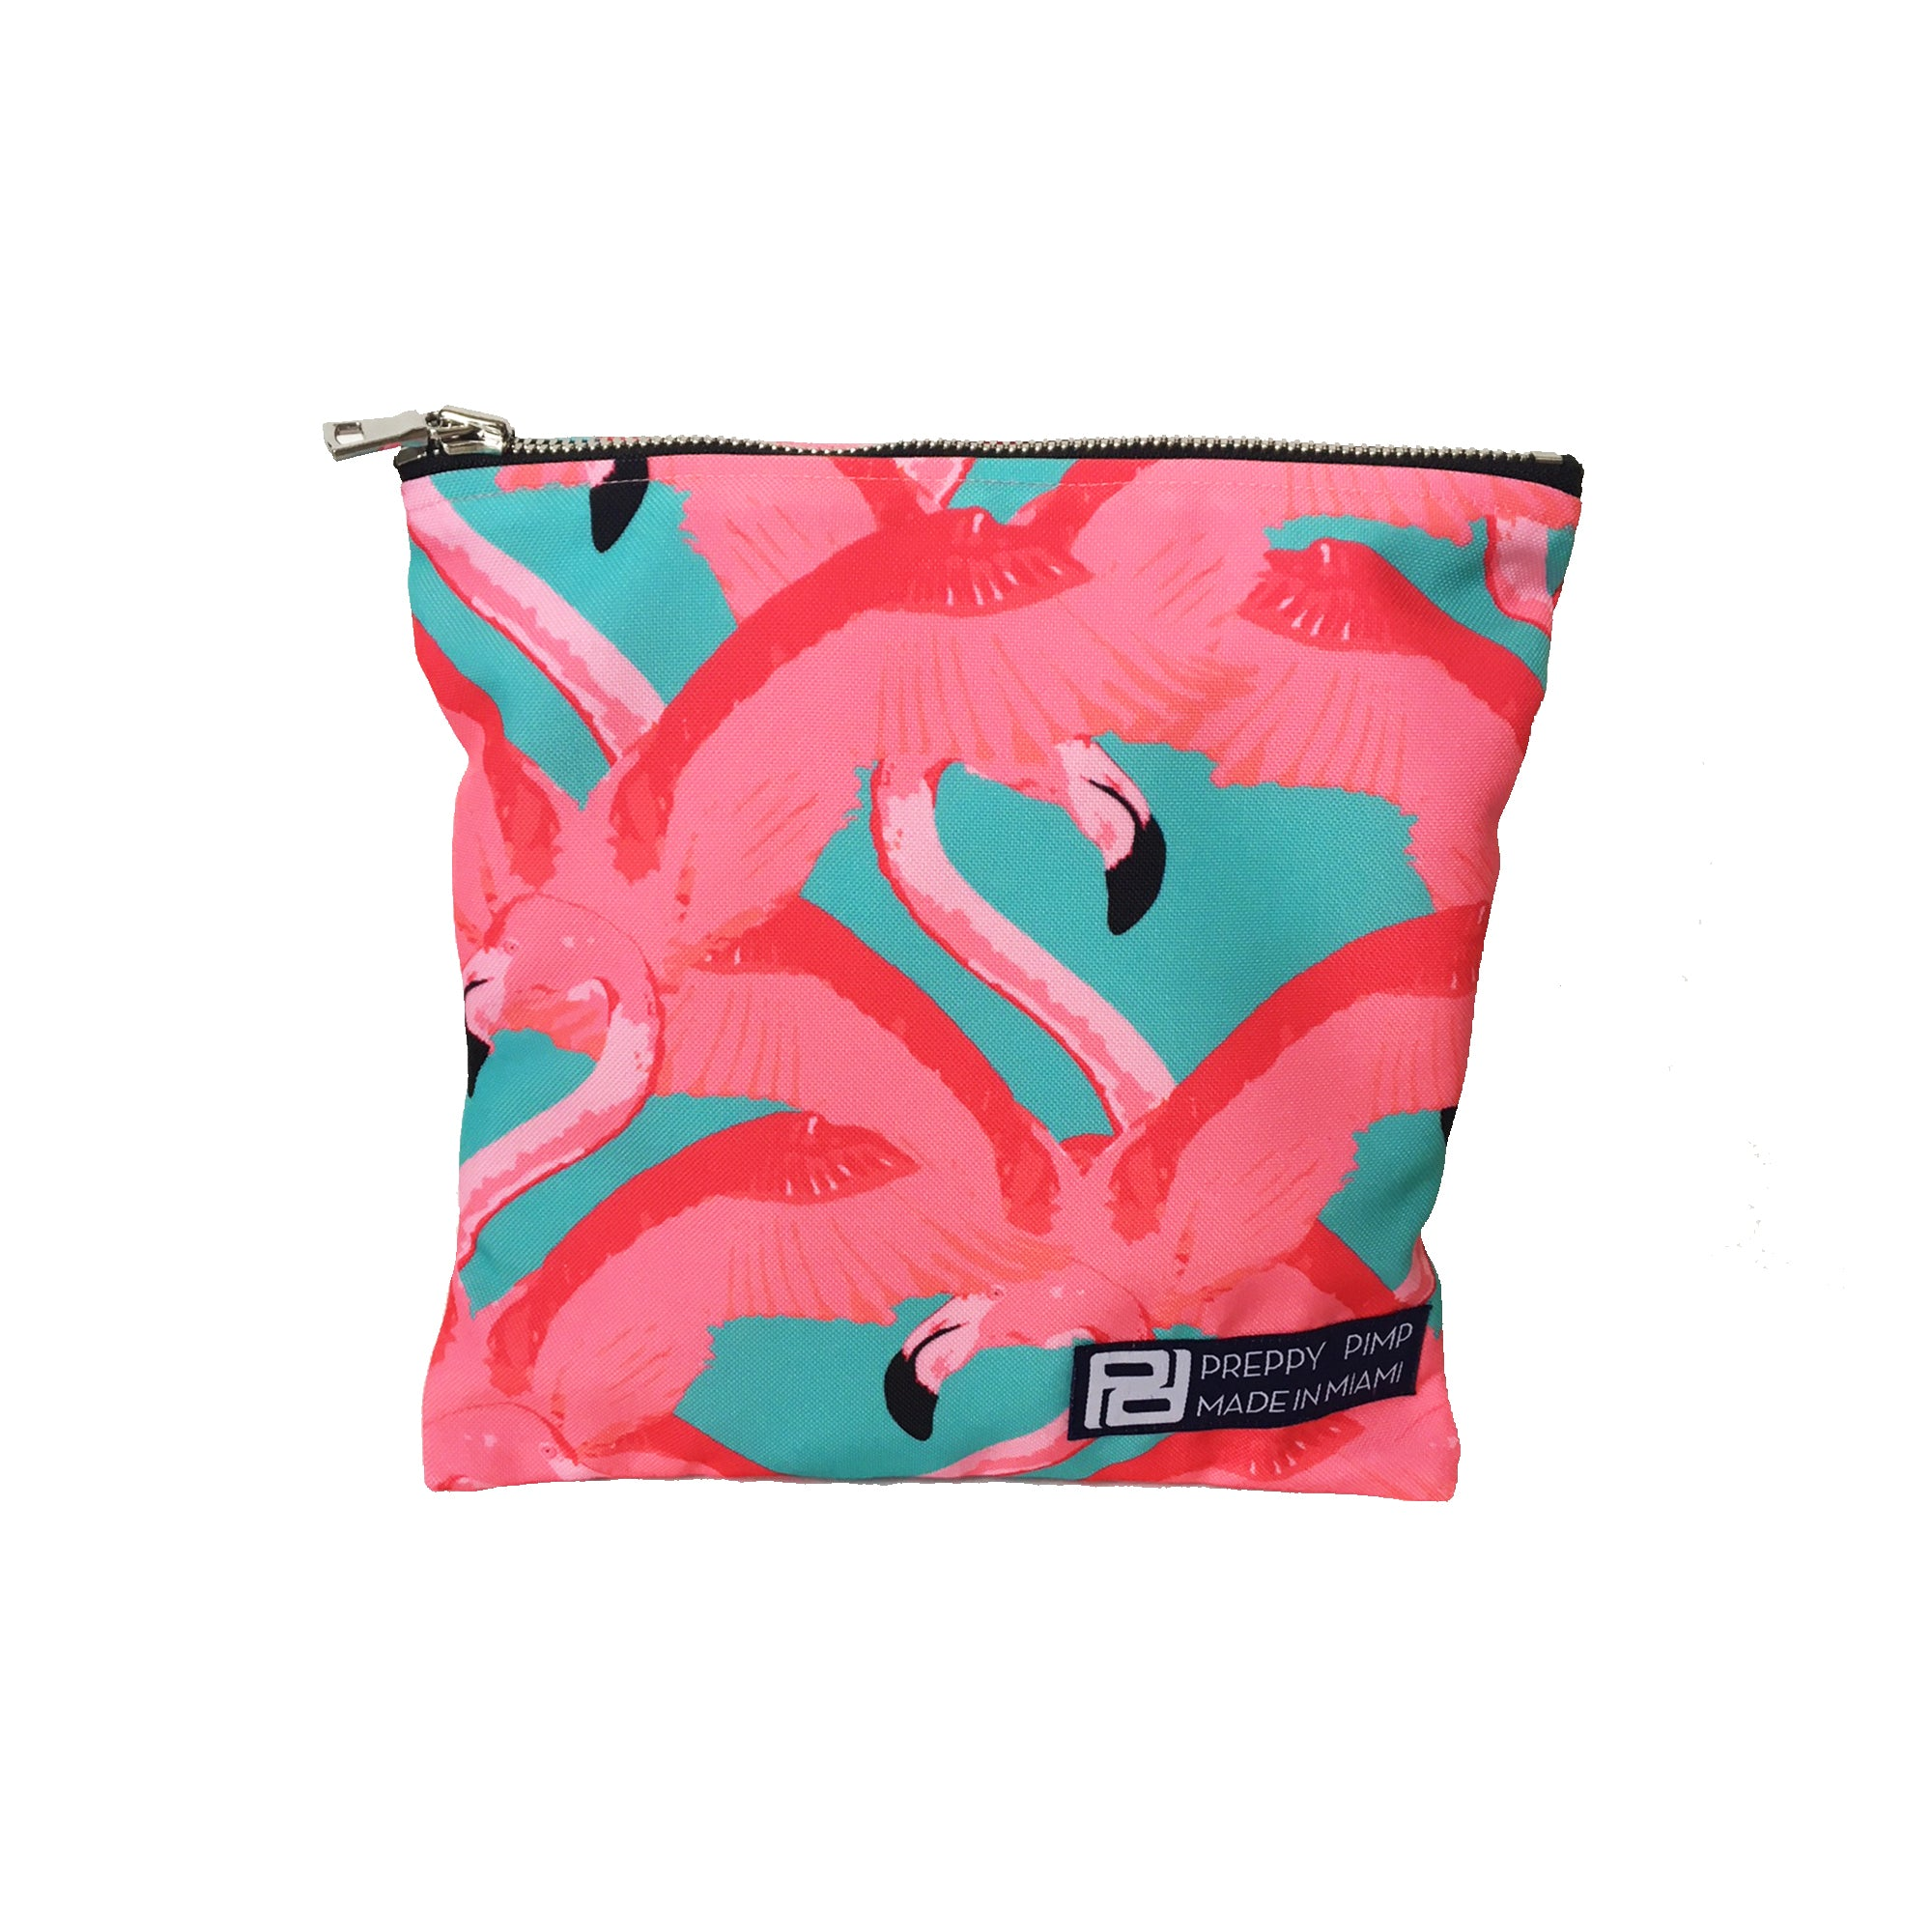 Preppy Pimp Small Pouch